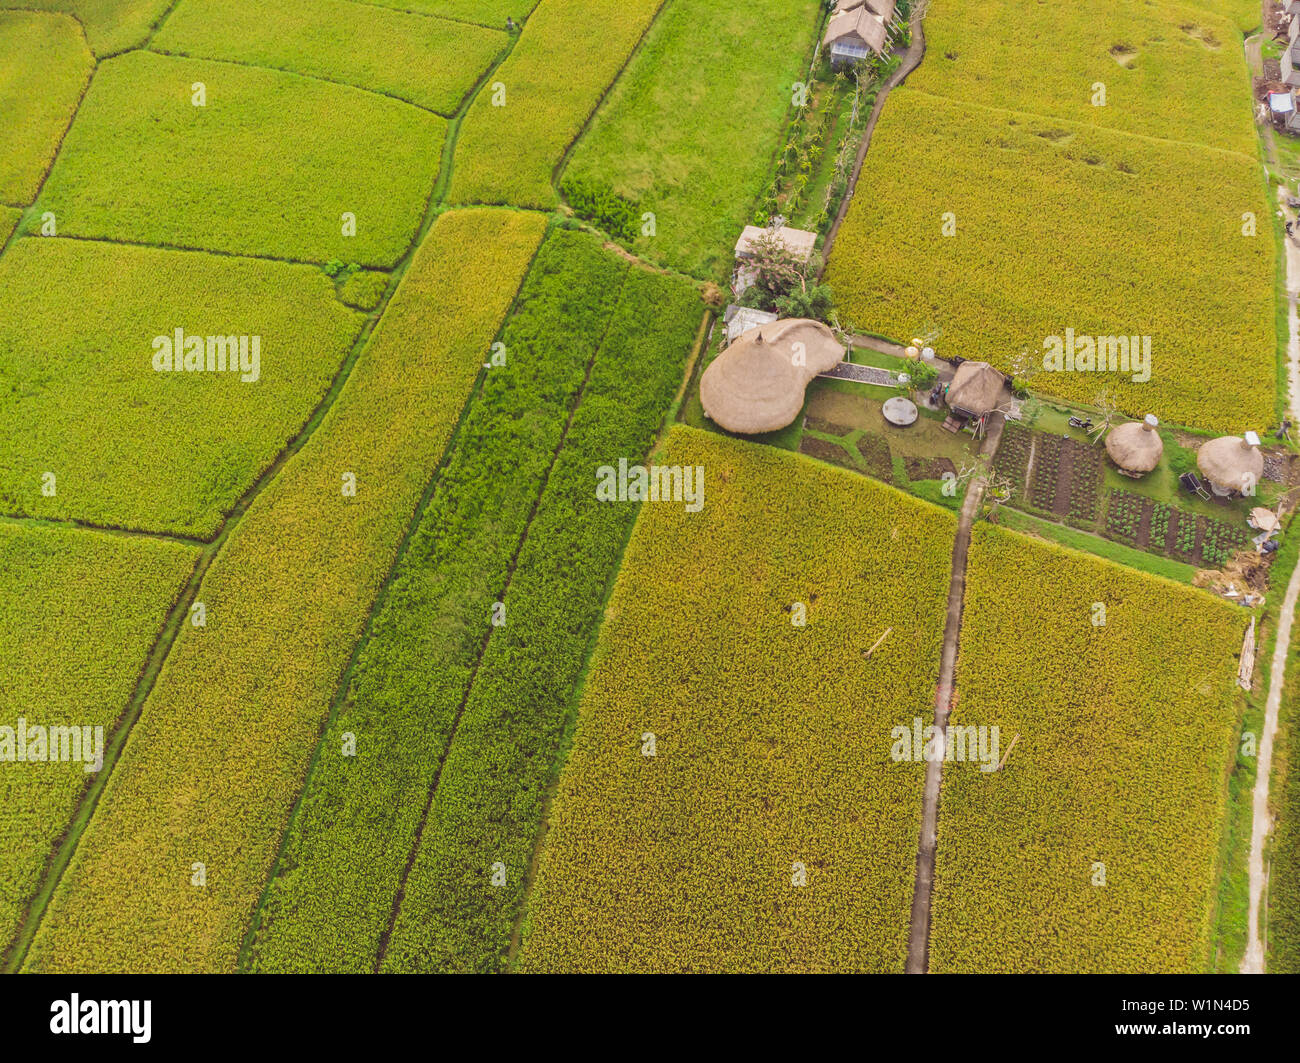 Image of beautiful Terraced rice field in water season and Irrigation from drone,Top view of rices paddy - Stock Image